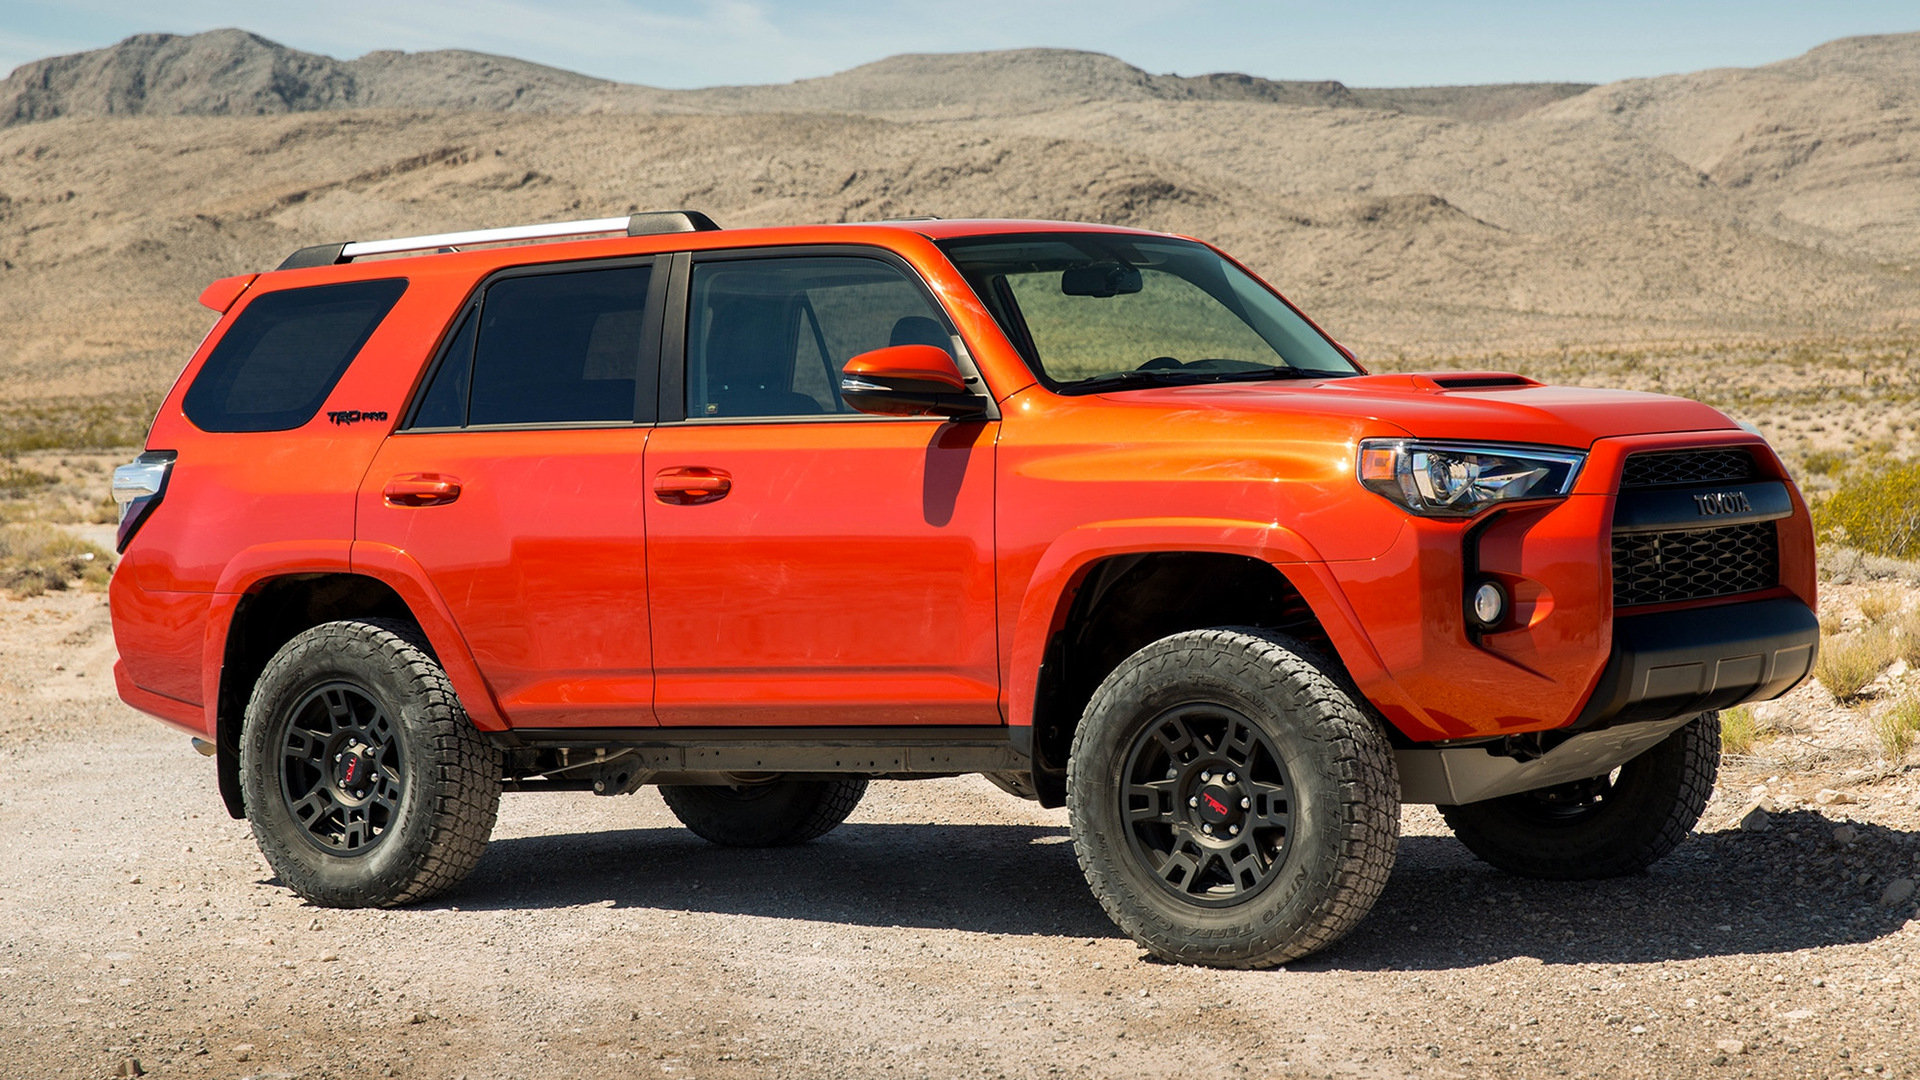 2014 Hd Wallpapers: TRD Toyota 4Runner Pro (2014) Wallpapers And HD Images